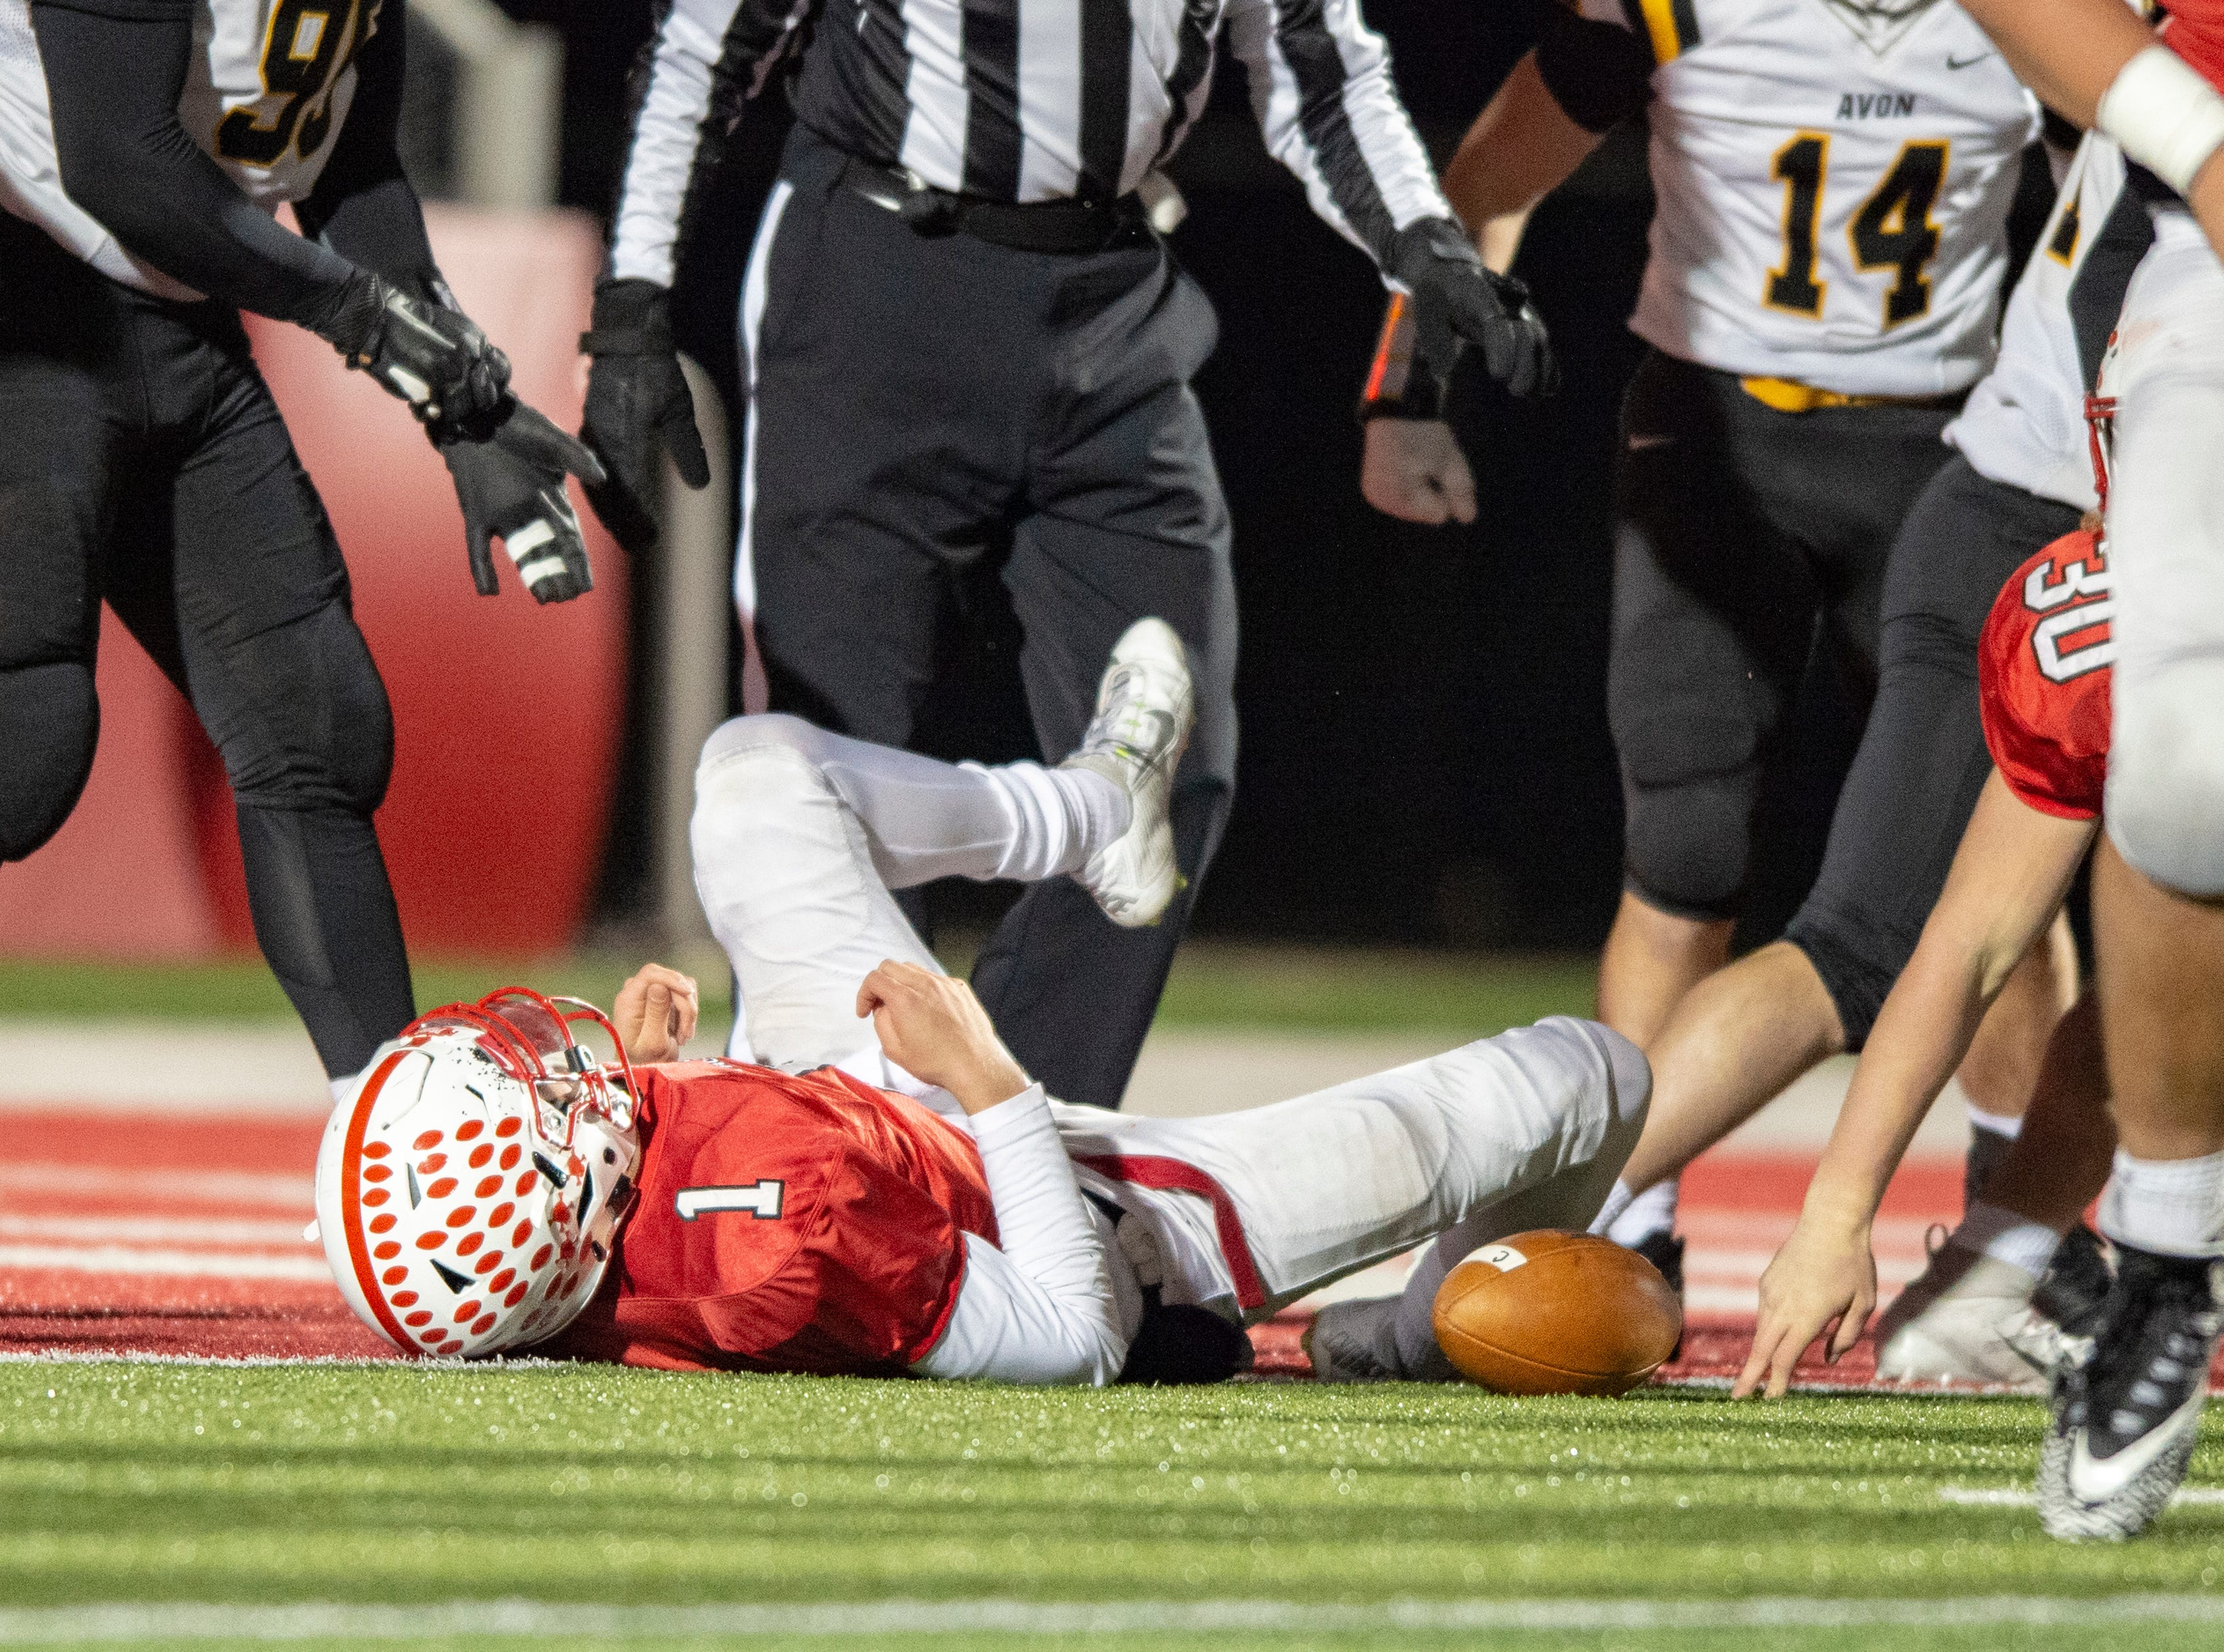 Center Grove High School senior Jack Moore (1) reacts after sophomore Carson Steele (30) failed to rush the ball into the end zone during the first half of action. Center Grove High School hosted Avon High School in an IHSAA Class 6A Regional Championship varsity football game, Friday, Nov. 9, 2018.